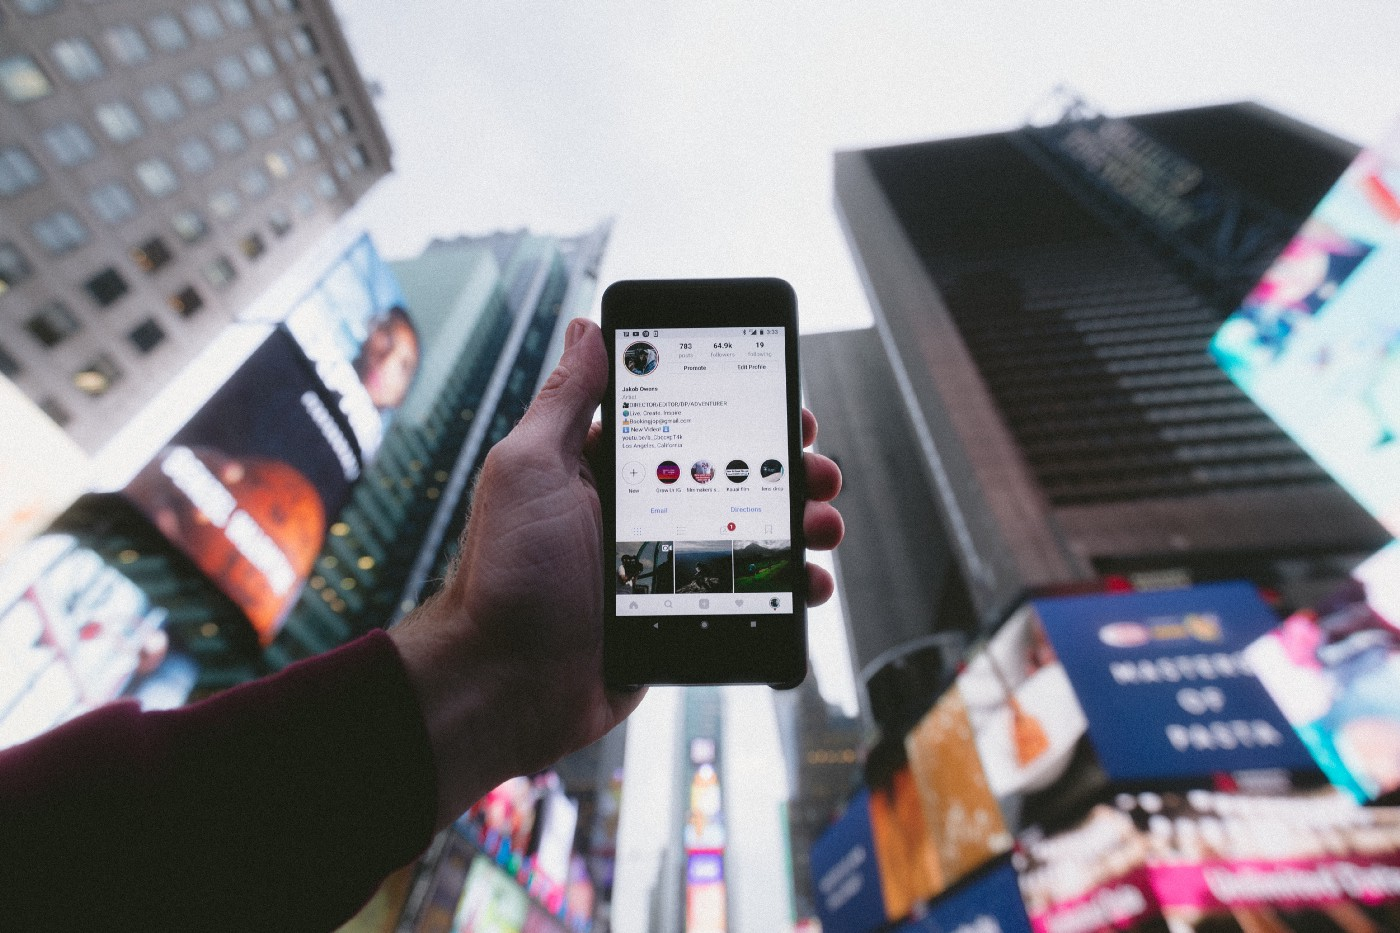 A person holds up a phone with high-rise buildings in the background.